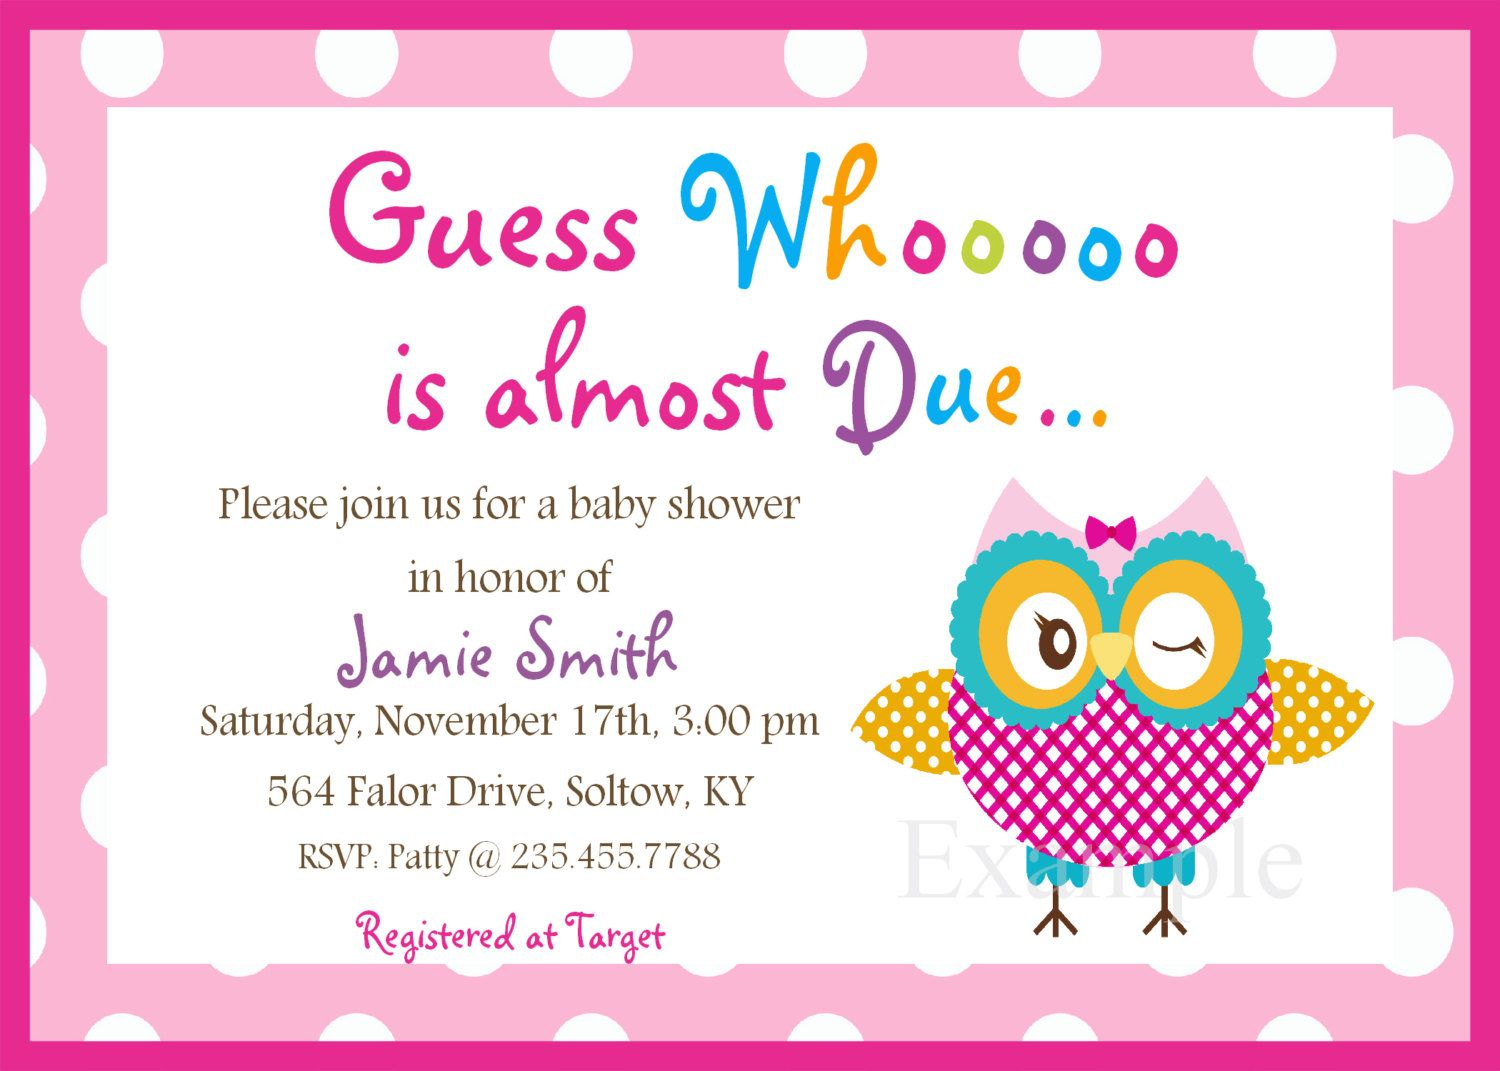 17 Best images about Baby Shower Invitations on Pinterest | Shower ...